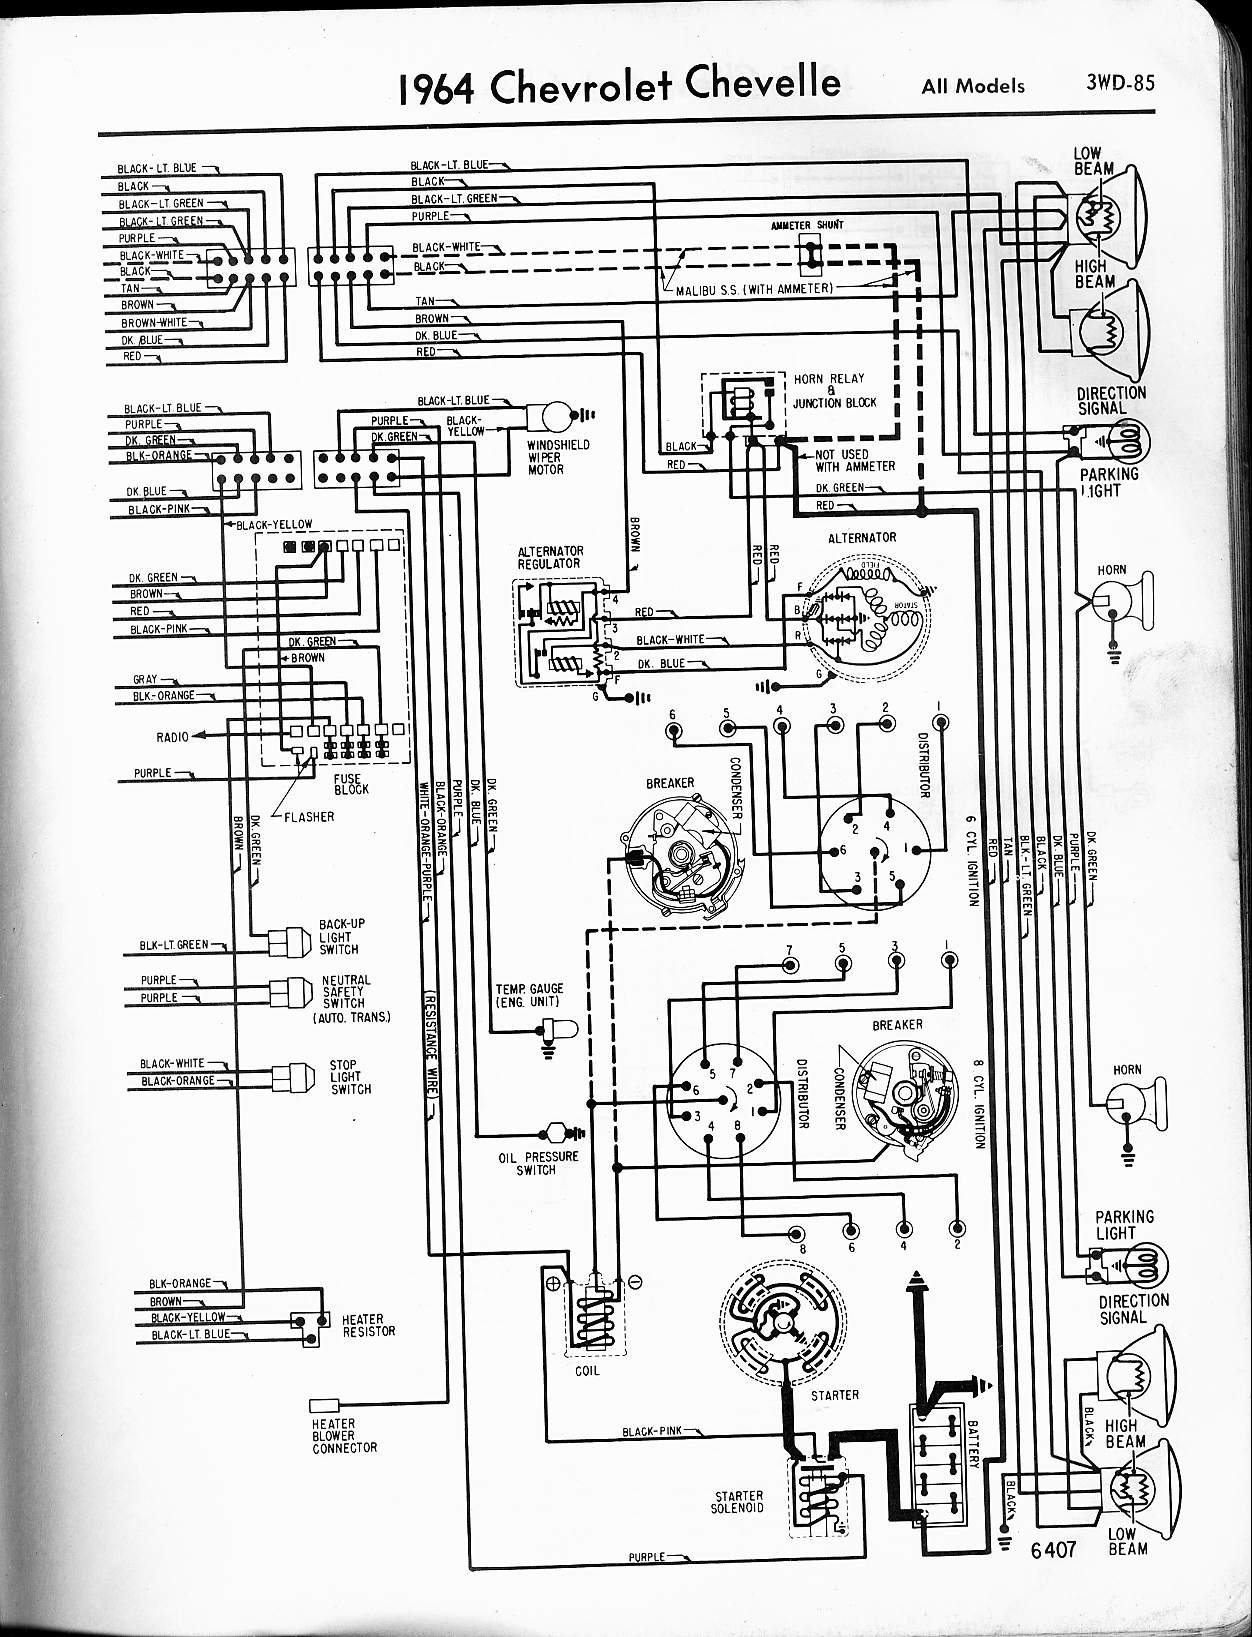 MWireChev64_3WD 085 chevy diagrams 1965 thunderbird alternator wiring diagram at crackthecode.co